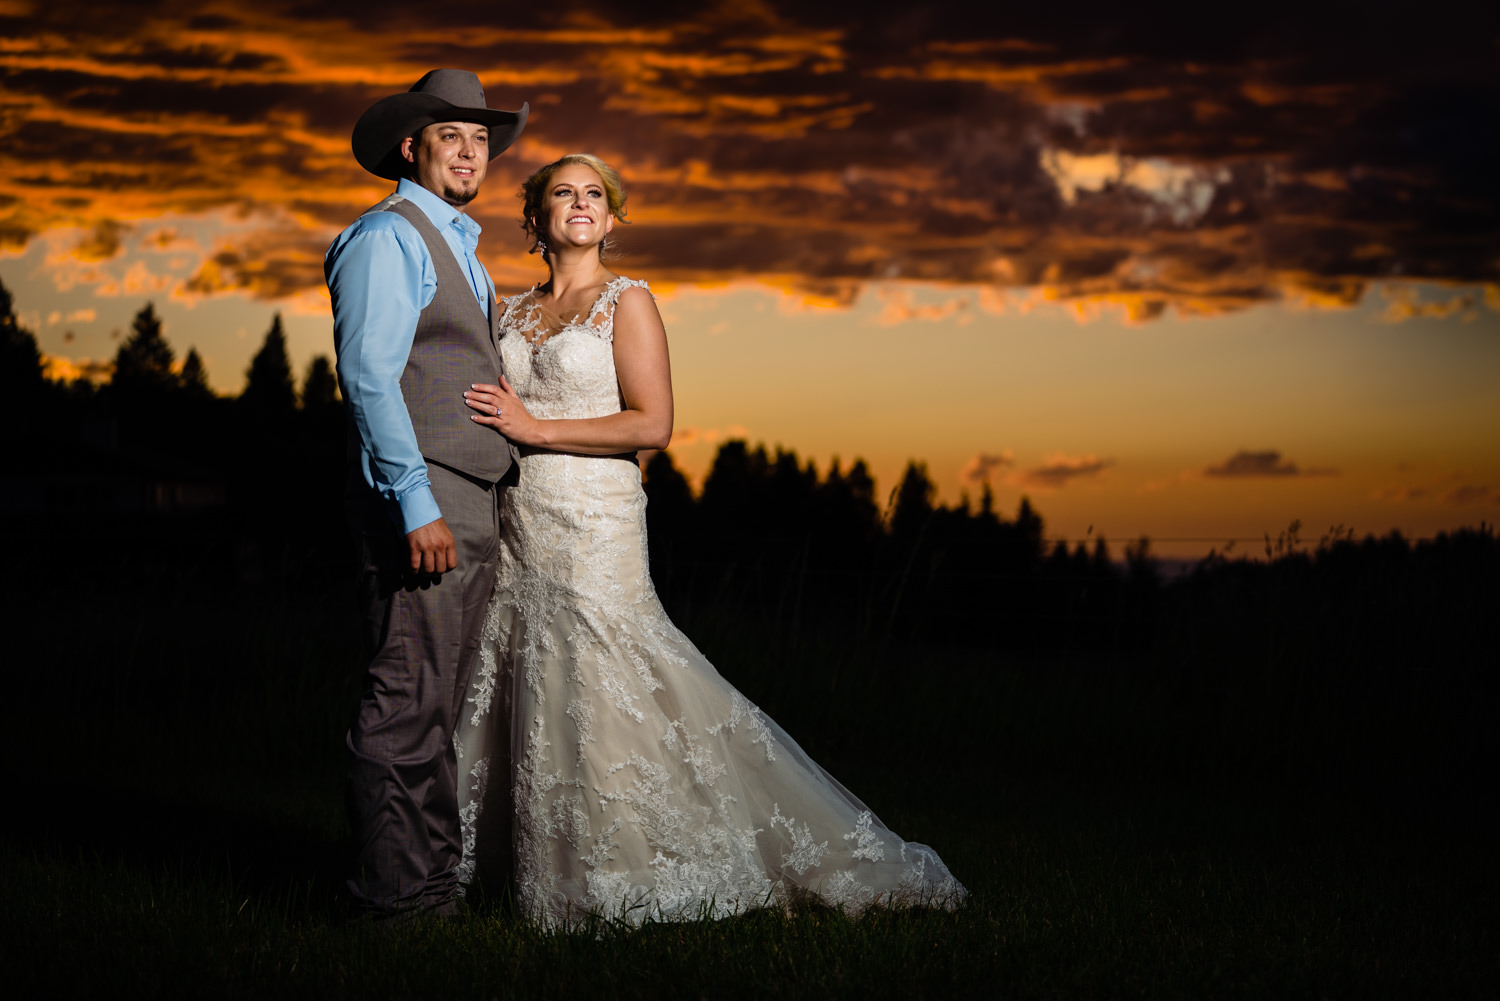 Bozeman Montana wedding by destination wedding photographer JMGant Photography.